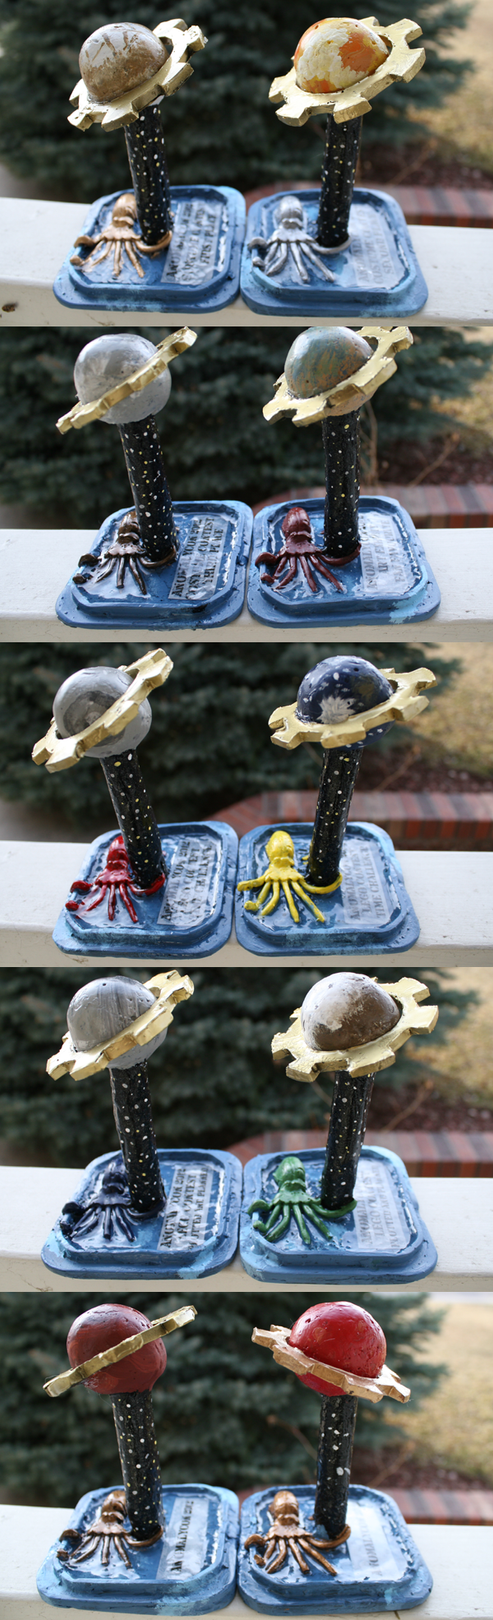 AnomalyCon 2012 Trophies by Curucar